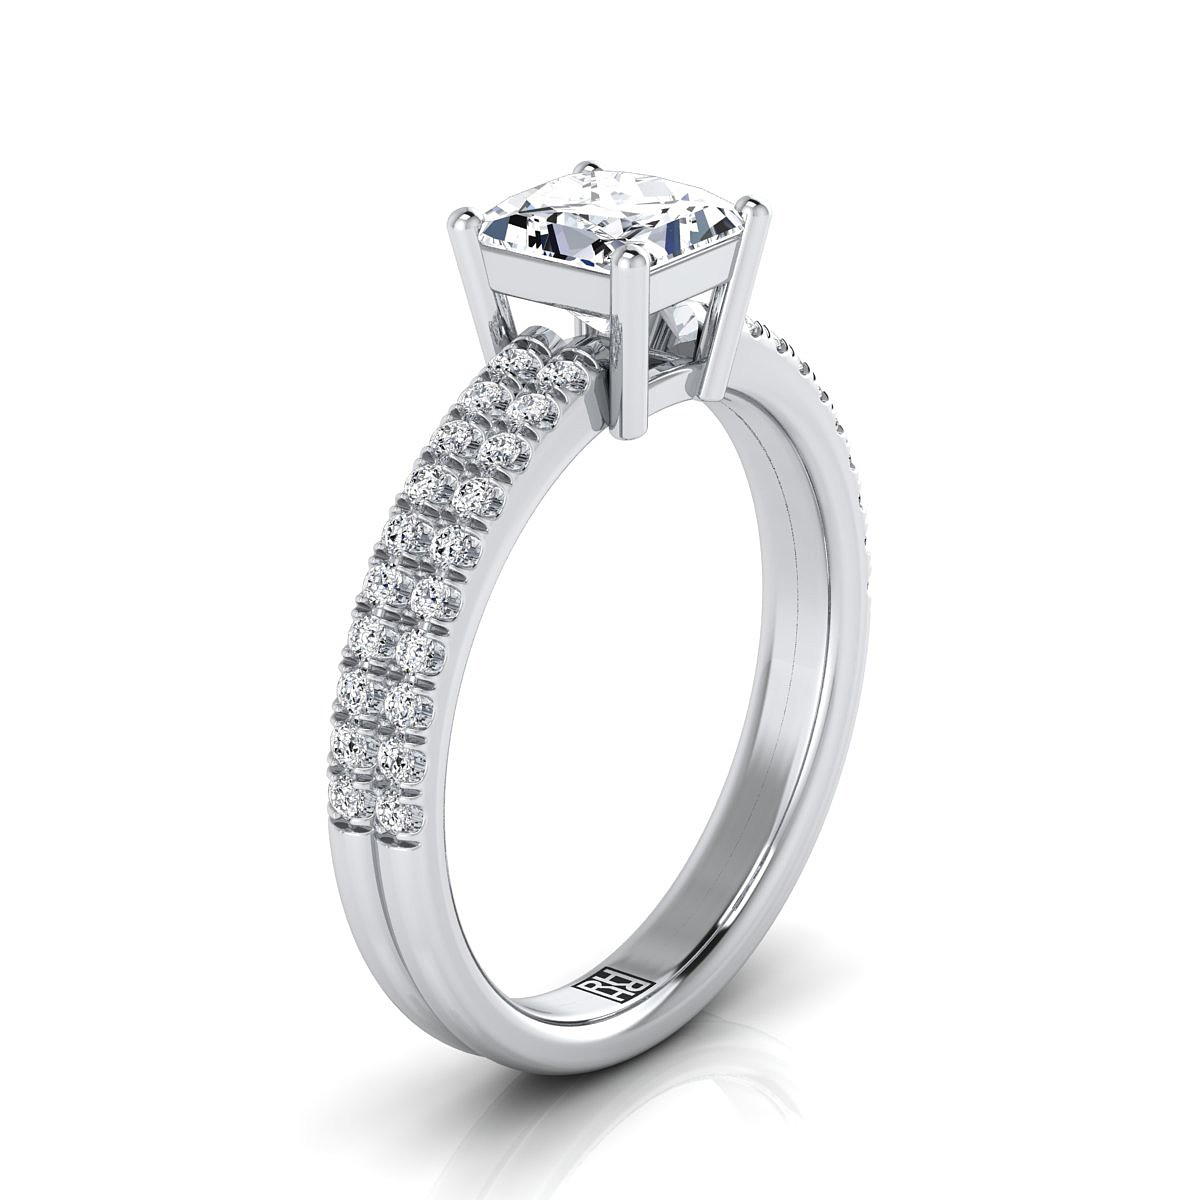 Princess Cut Diamond Double Row Engagement Ring With Micro U Set Pave In 14k White Gold 1 4 Cttw